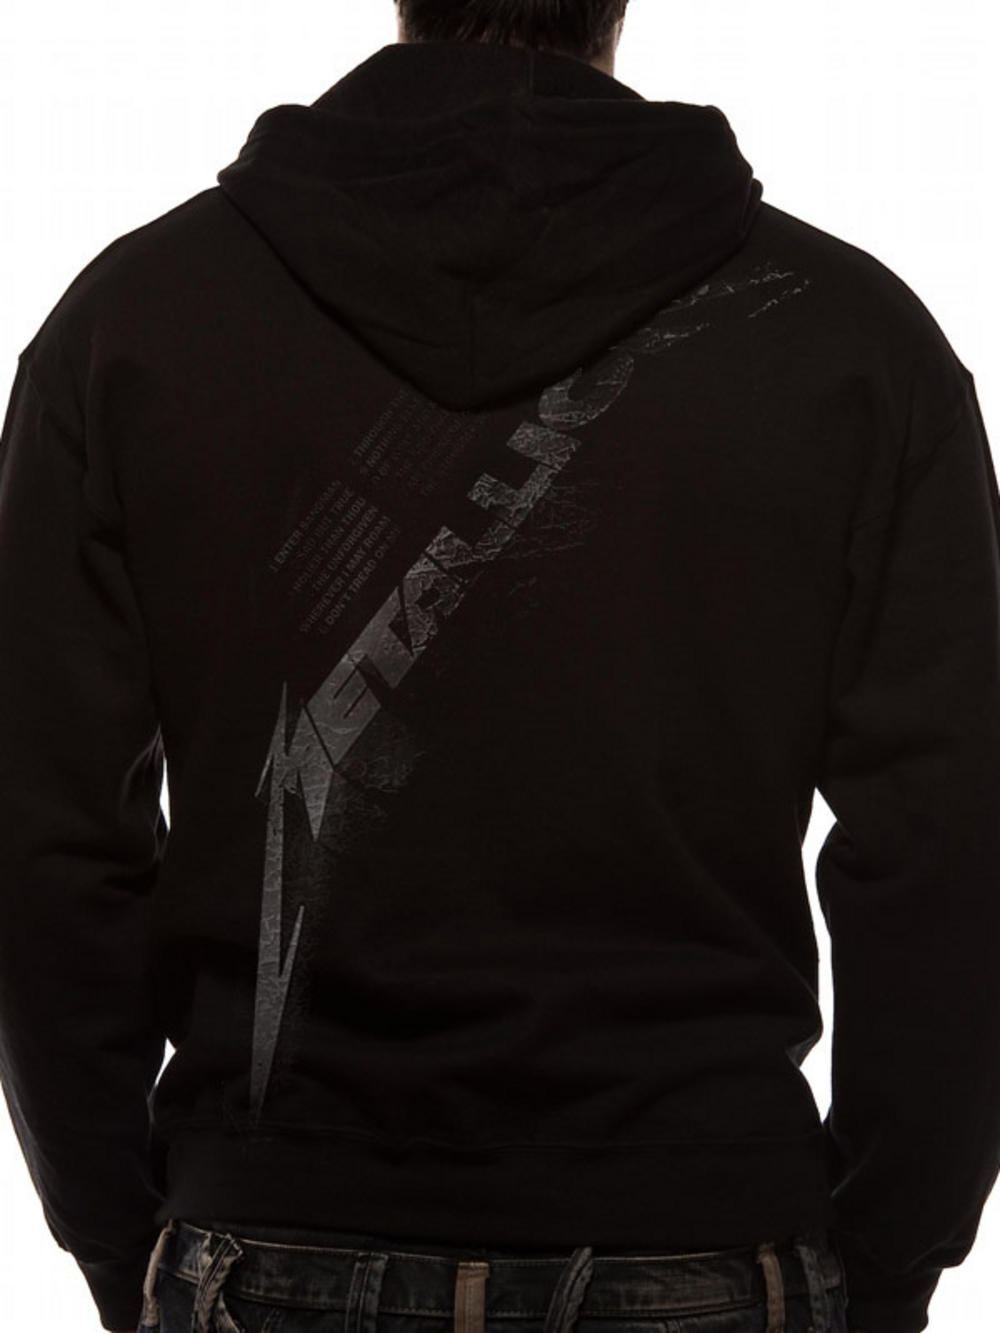 Metallica (Black Album Burnished) Hoodie. Buy Metallica (Black